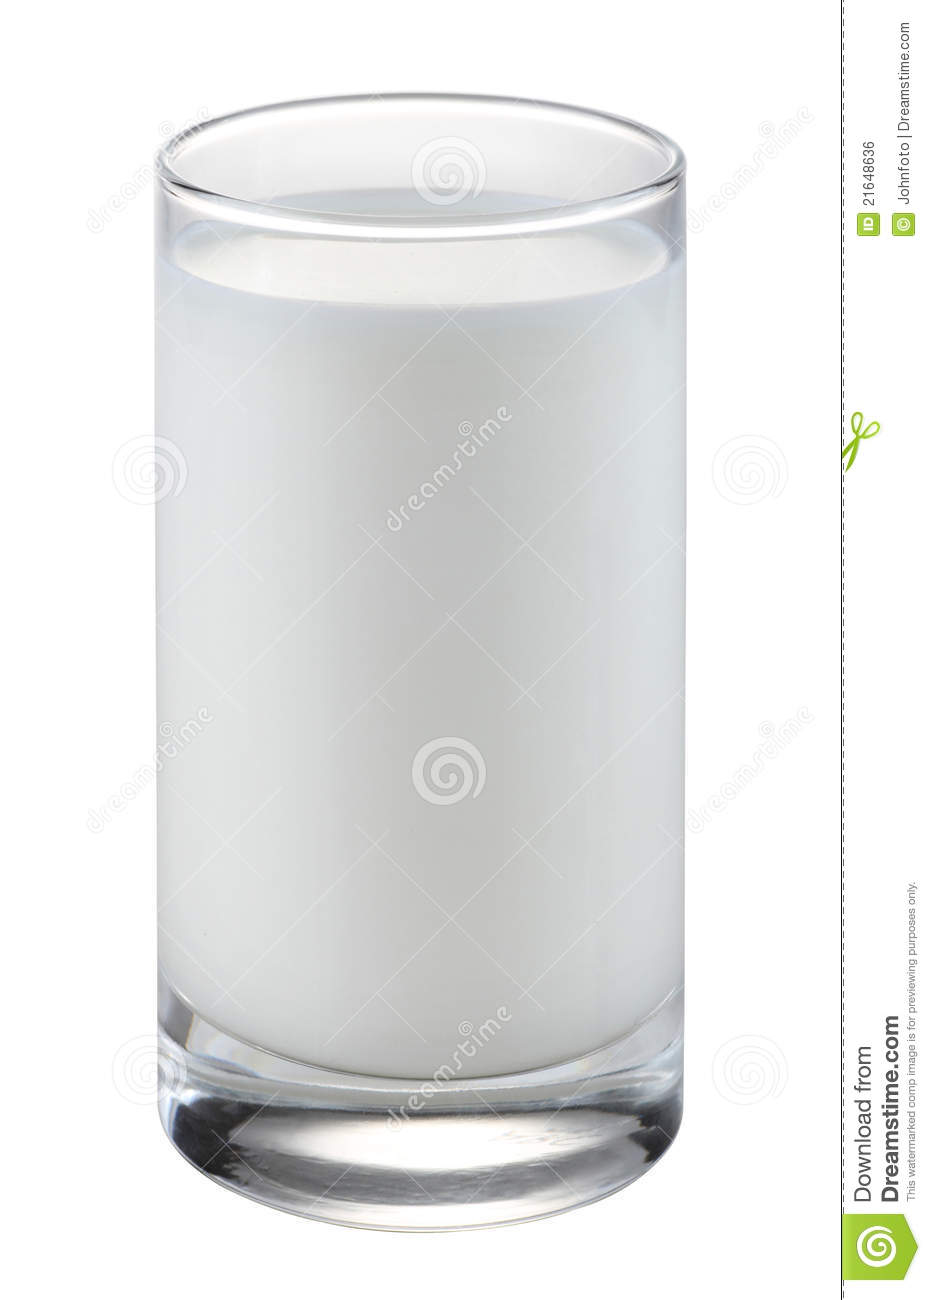 Glass Of Milk Royalty Free Stock Image - Image: 21648636